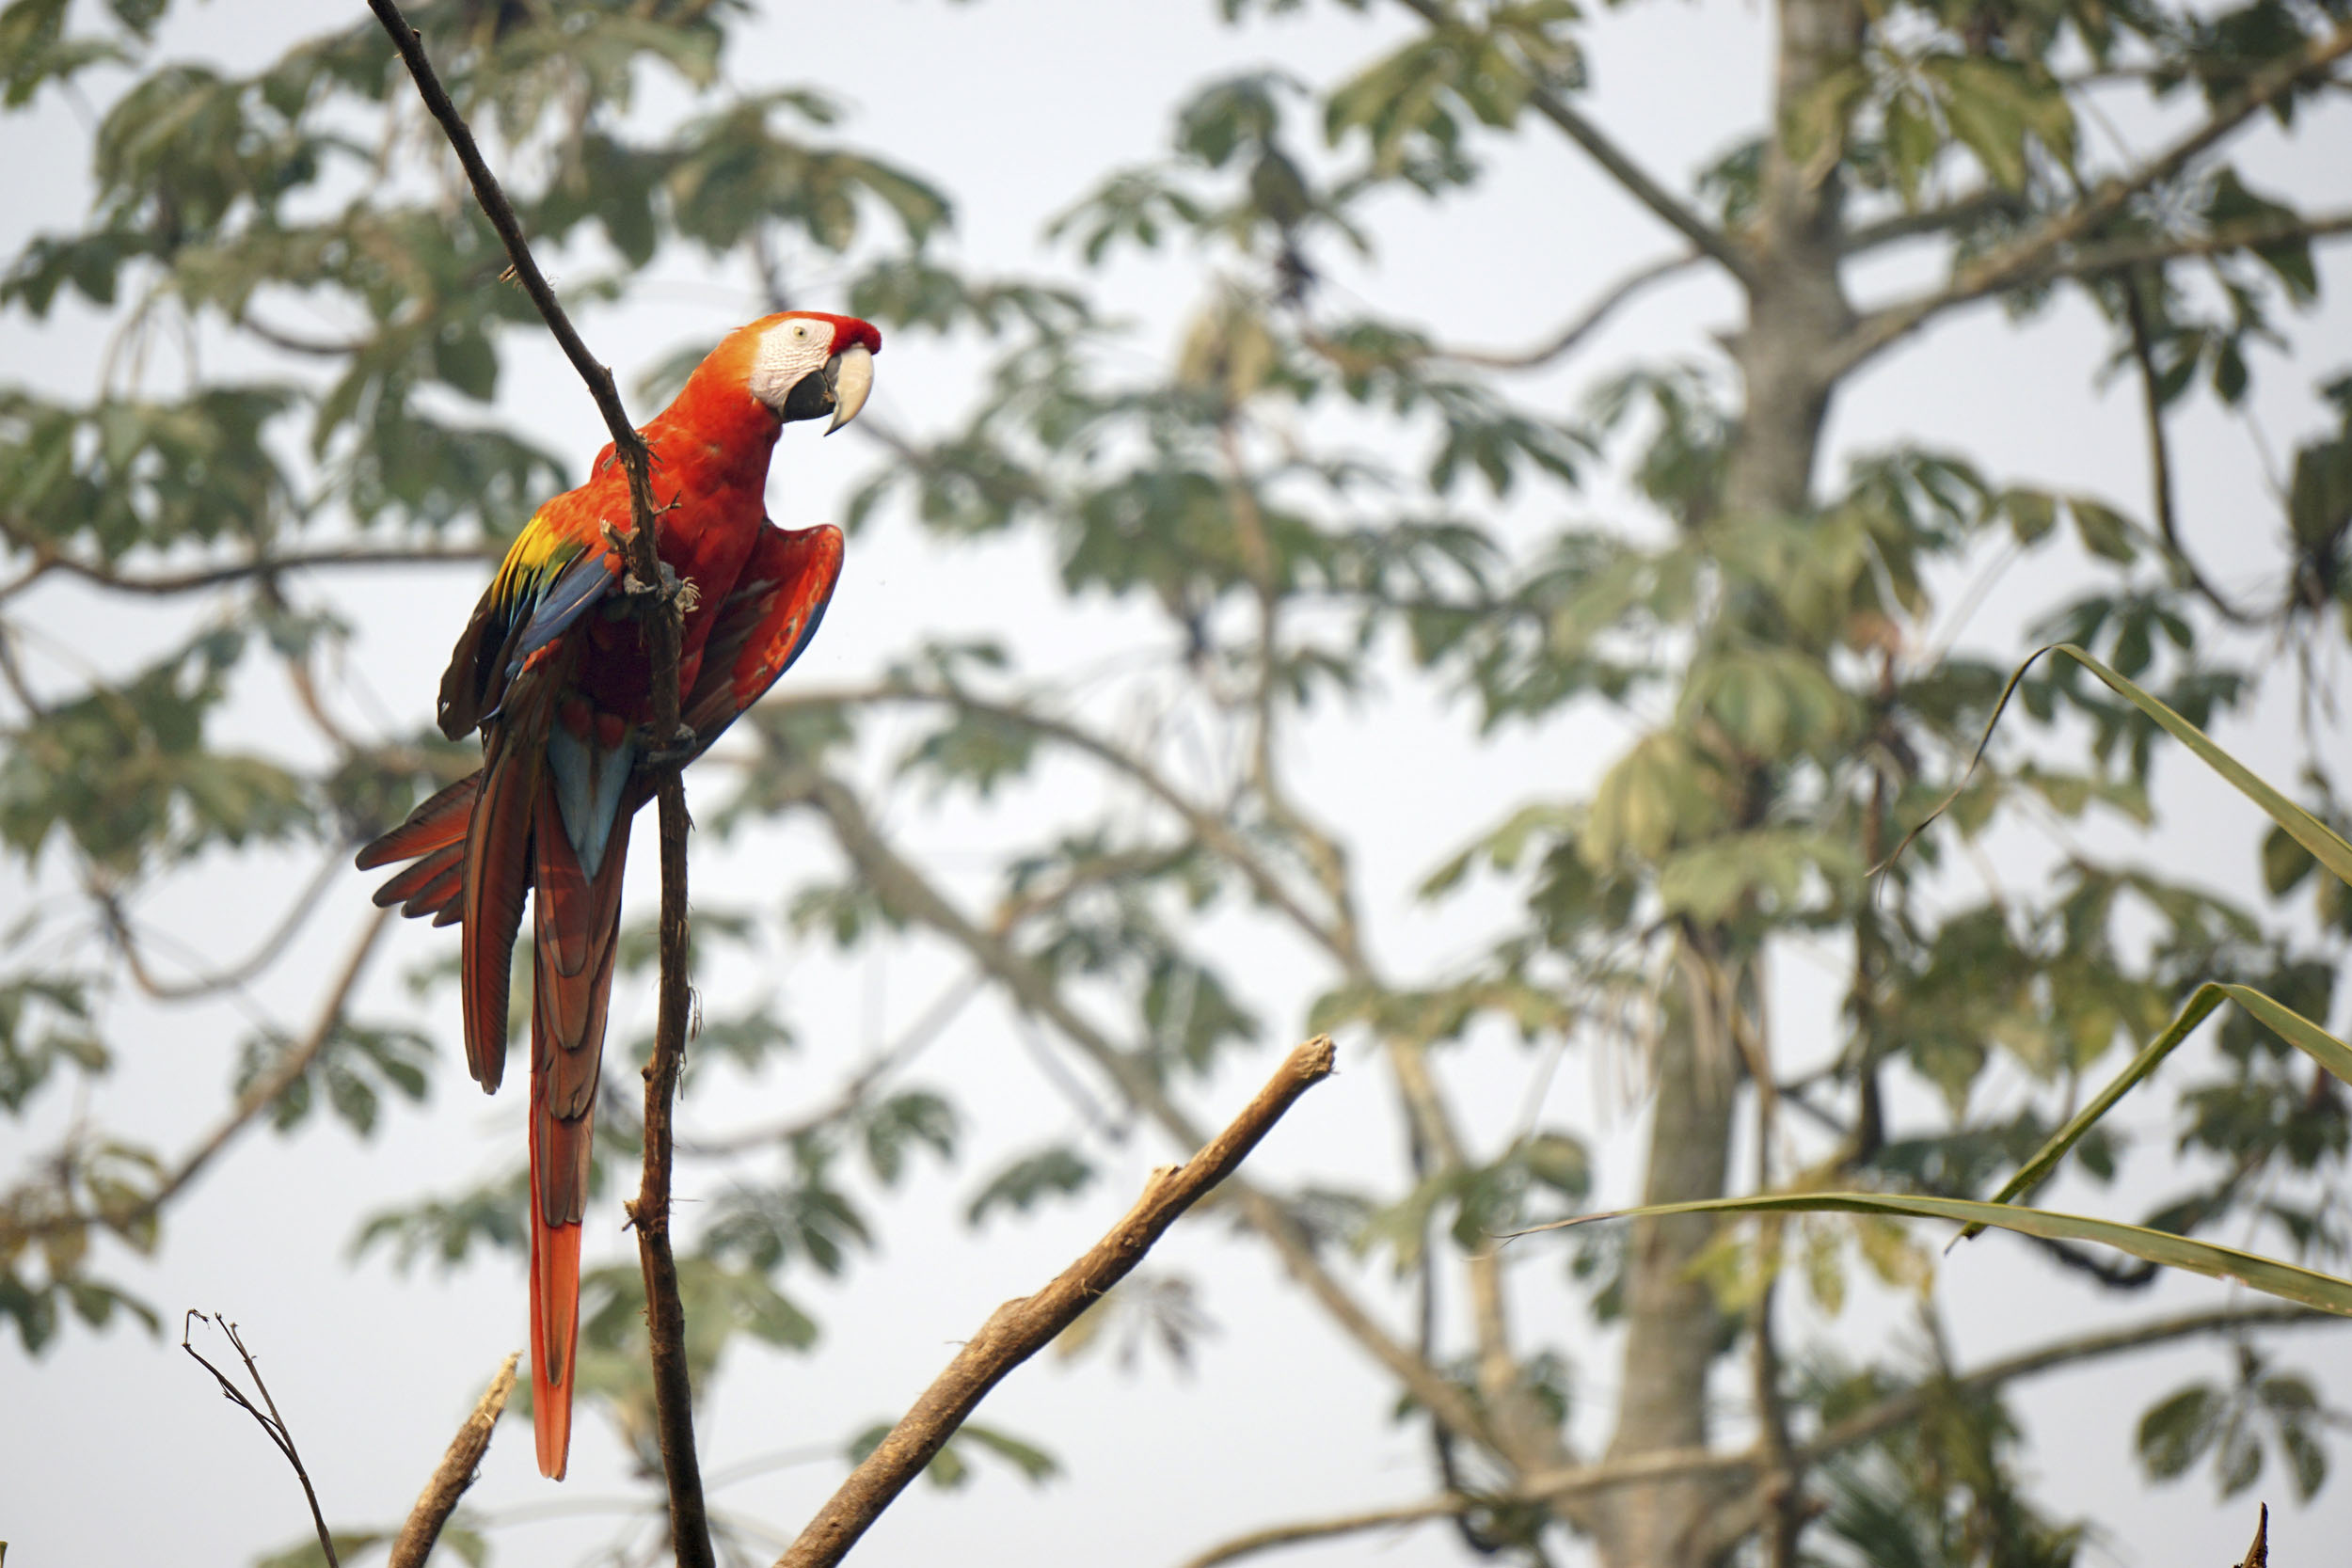 A red, yellow and blue macaw perched on a thin branch surrounded by leaves